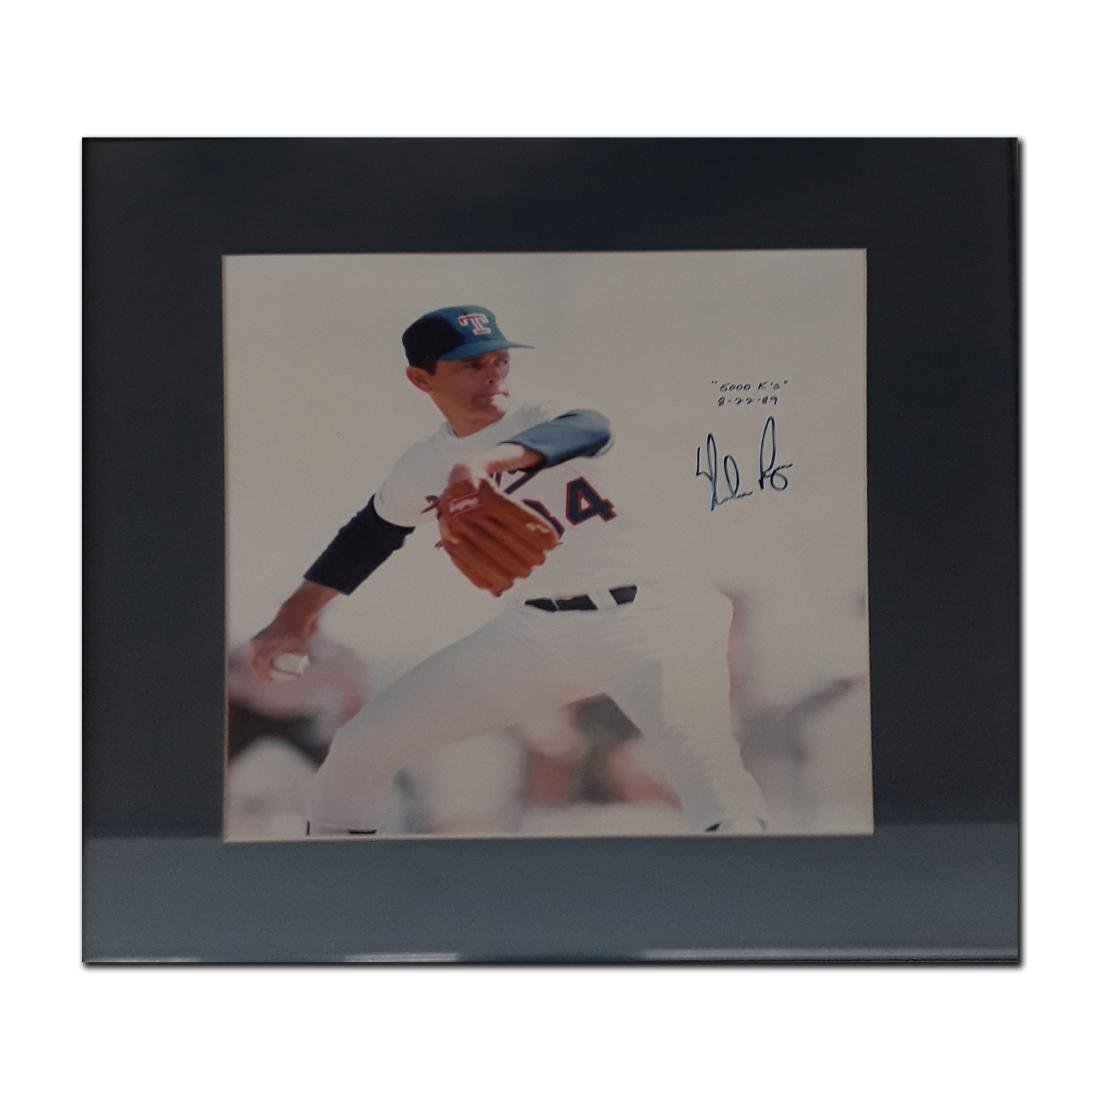 Signed and Framed Photo of Nolan Ryan